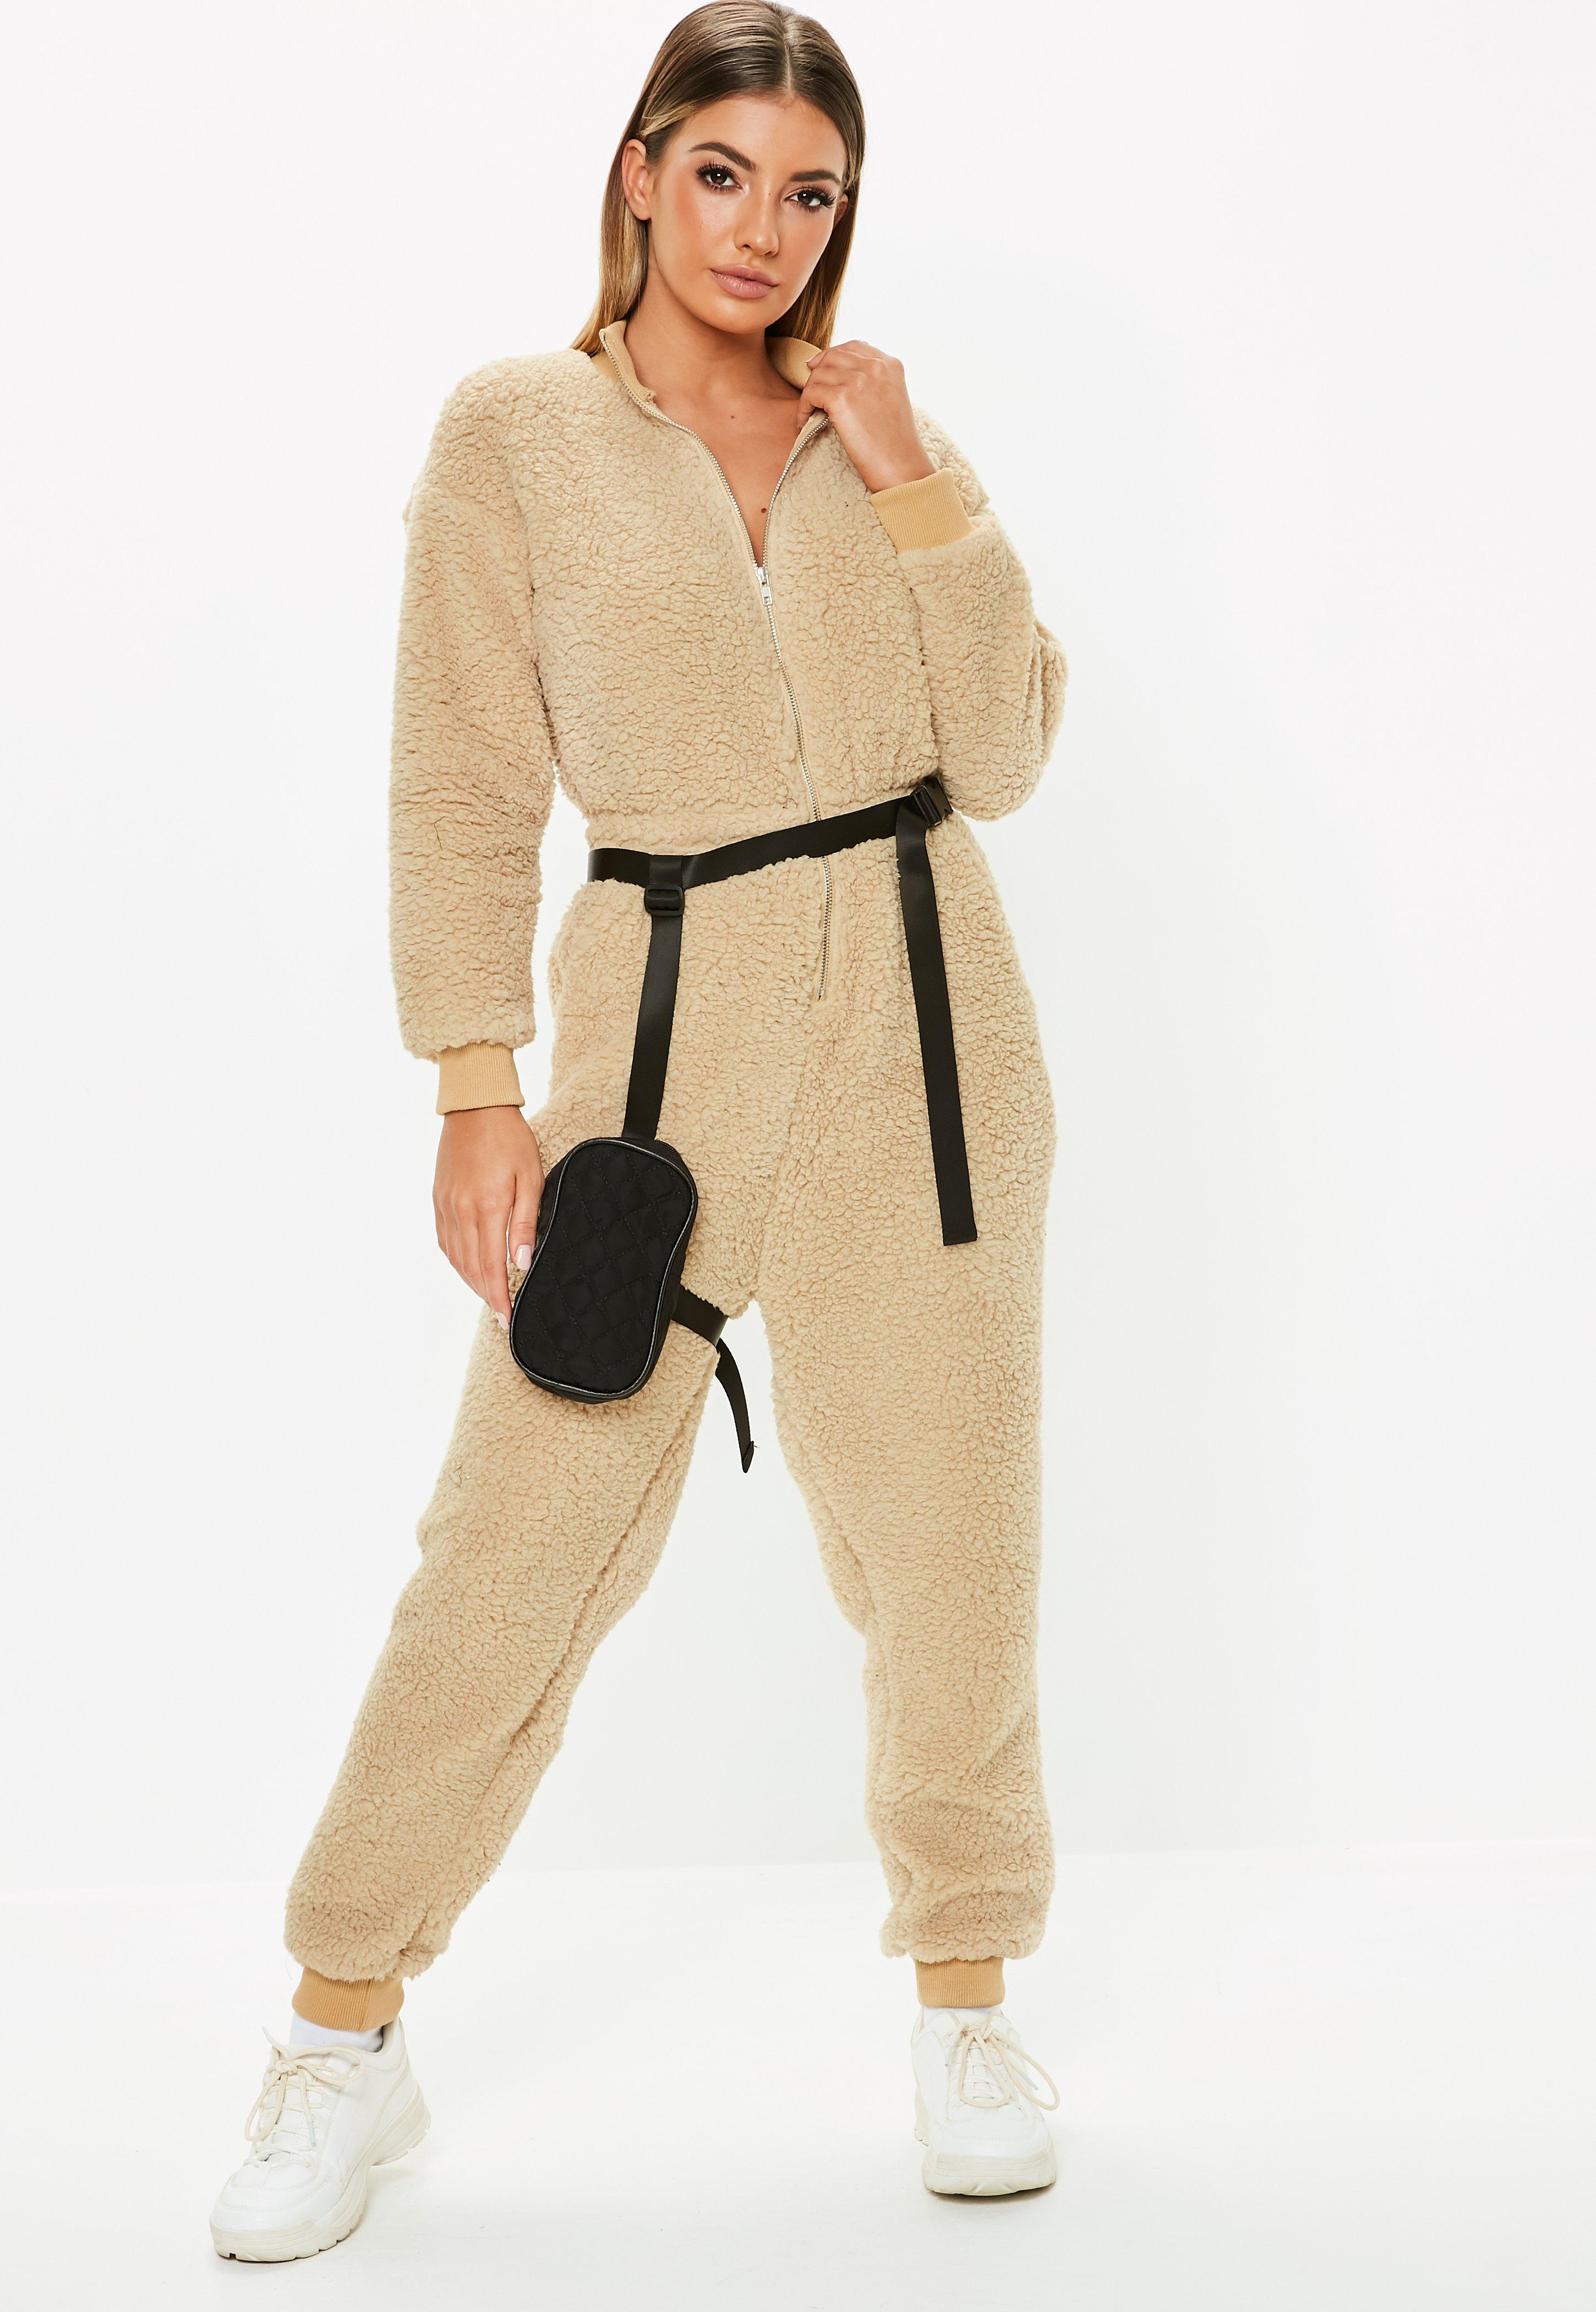 ee9c7c89d904 Lyst - Missguided Nude Teddy Long Sleeve Jumpsuit in Natural